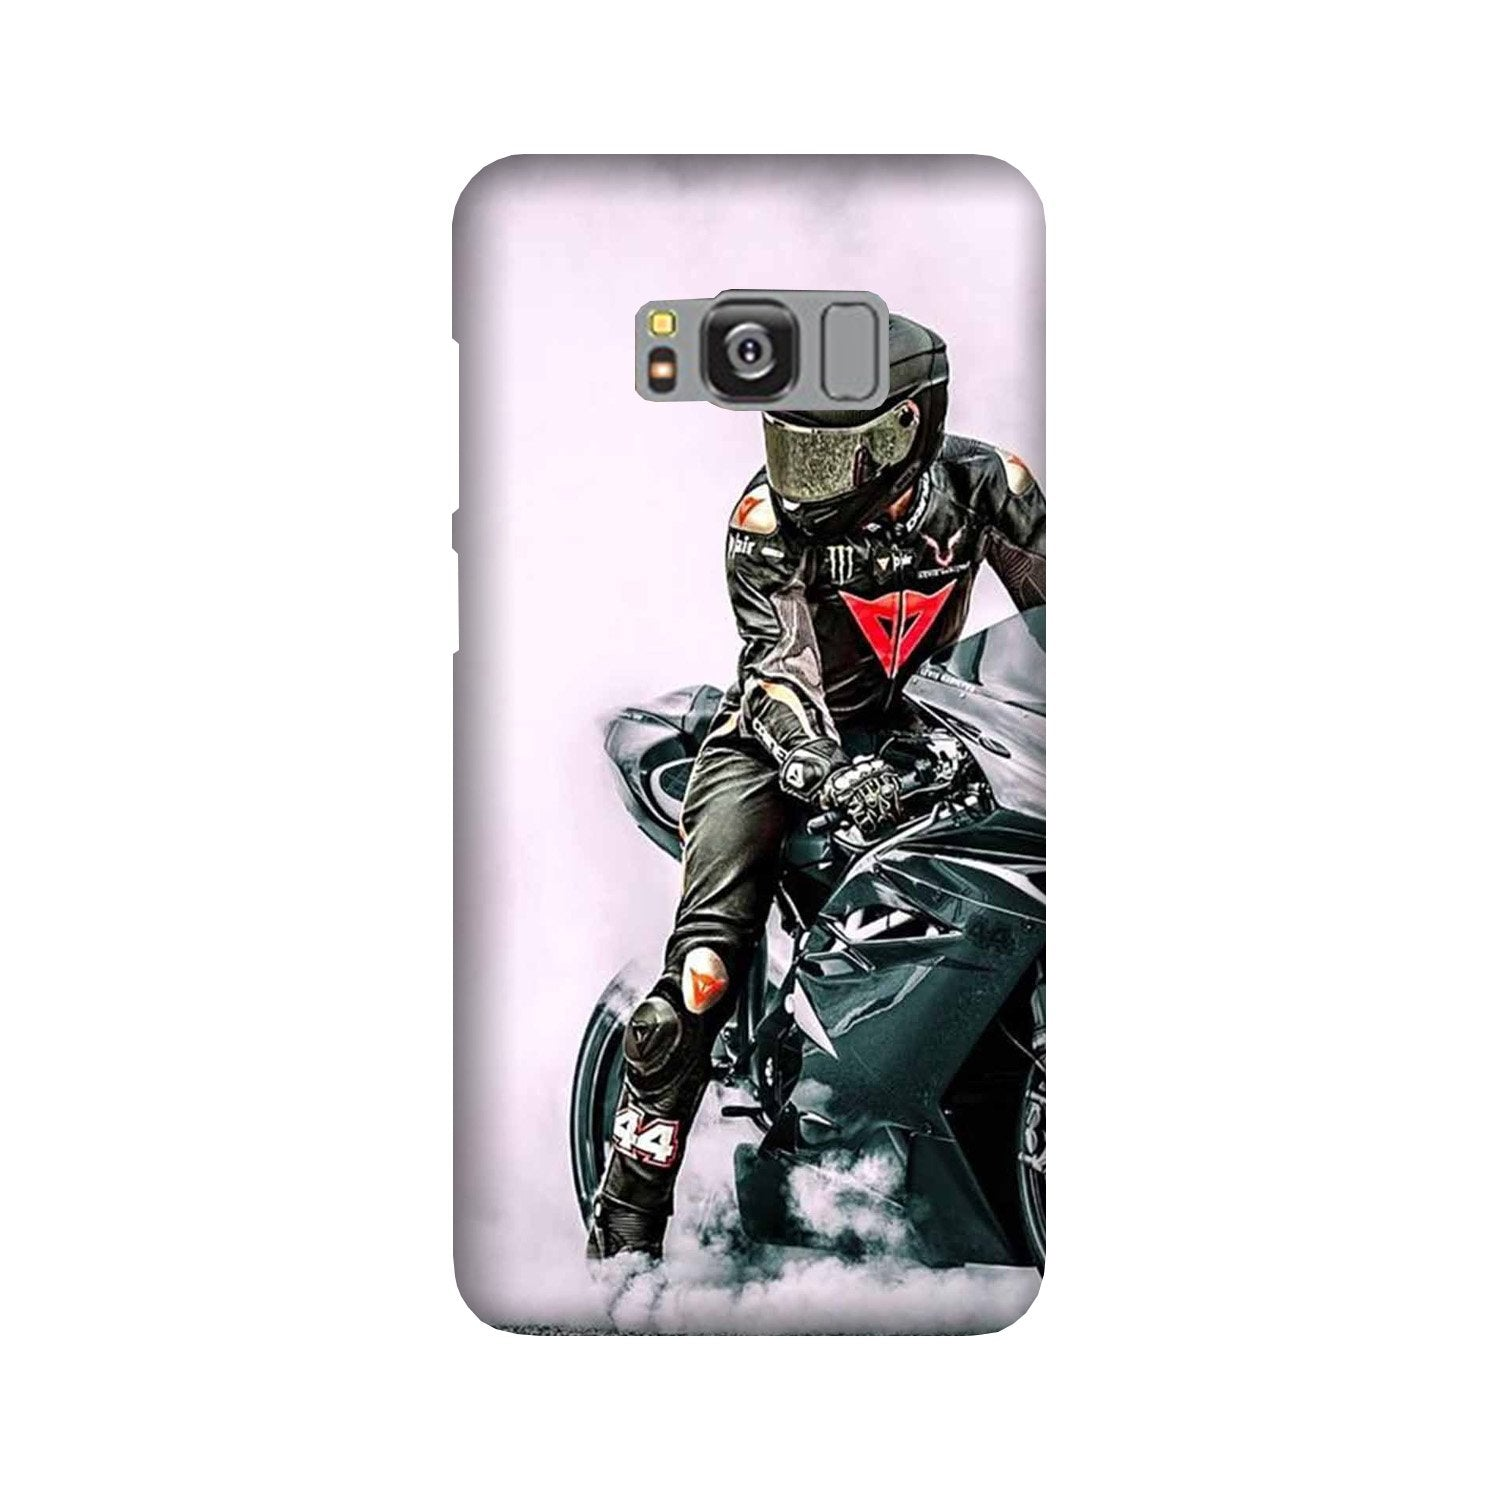 Biker Mobile Back Case for Galaxy S8 Plus  (Design - 383)